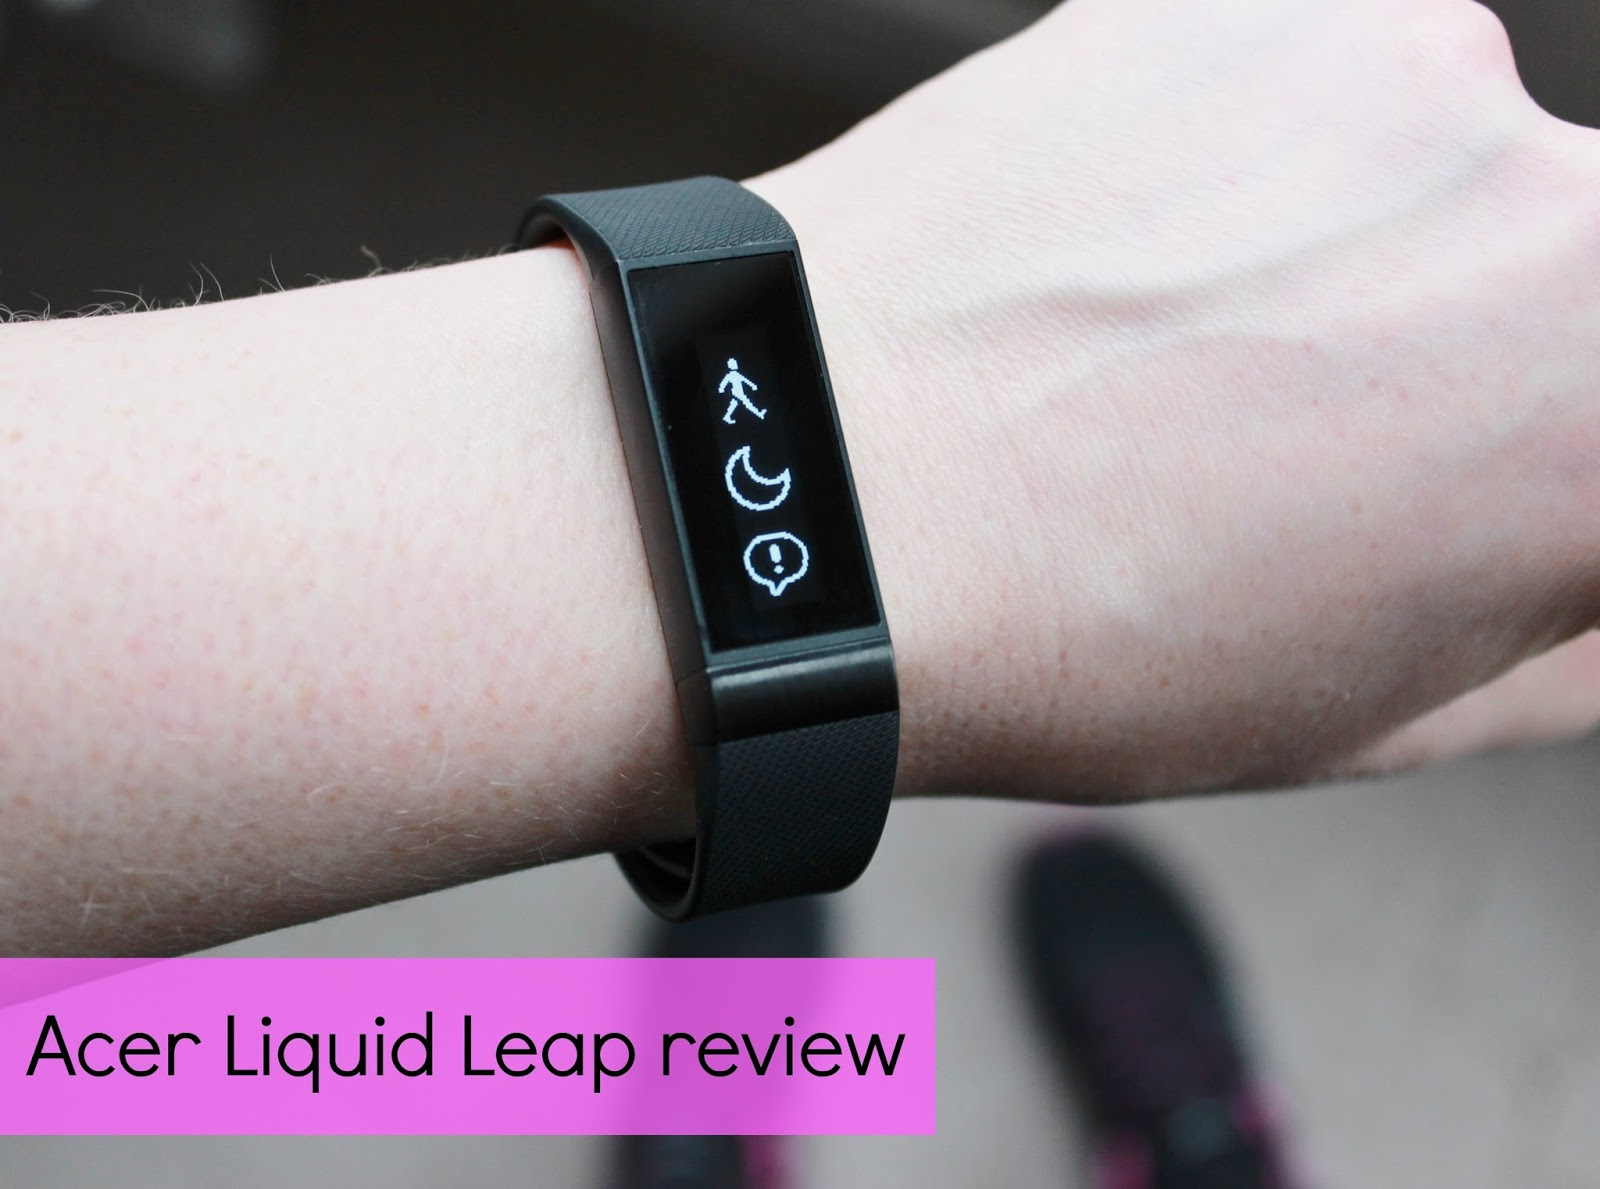 Acer liquid leap review